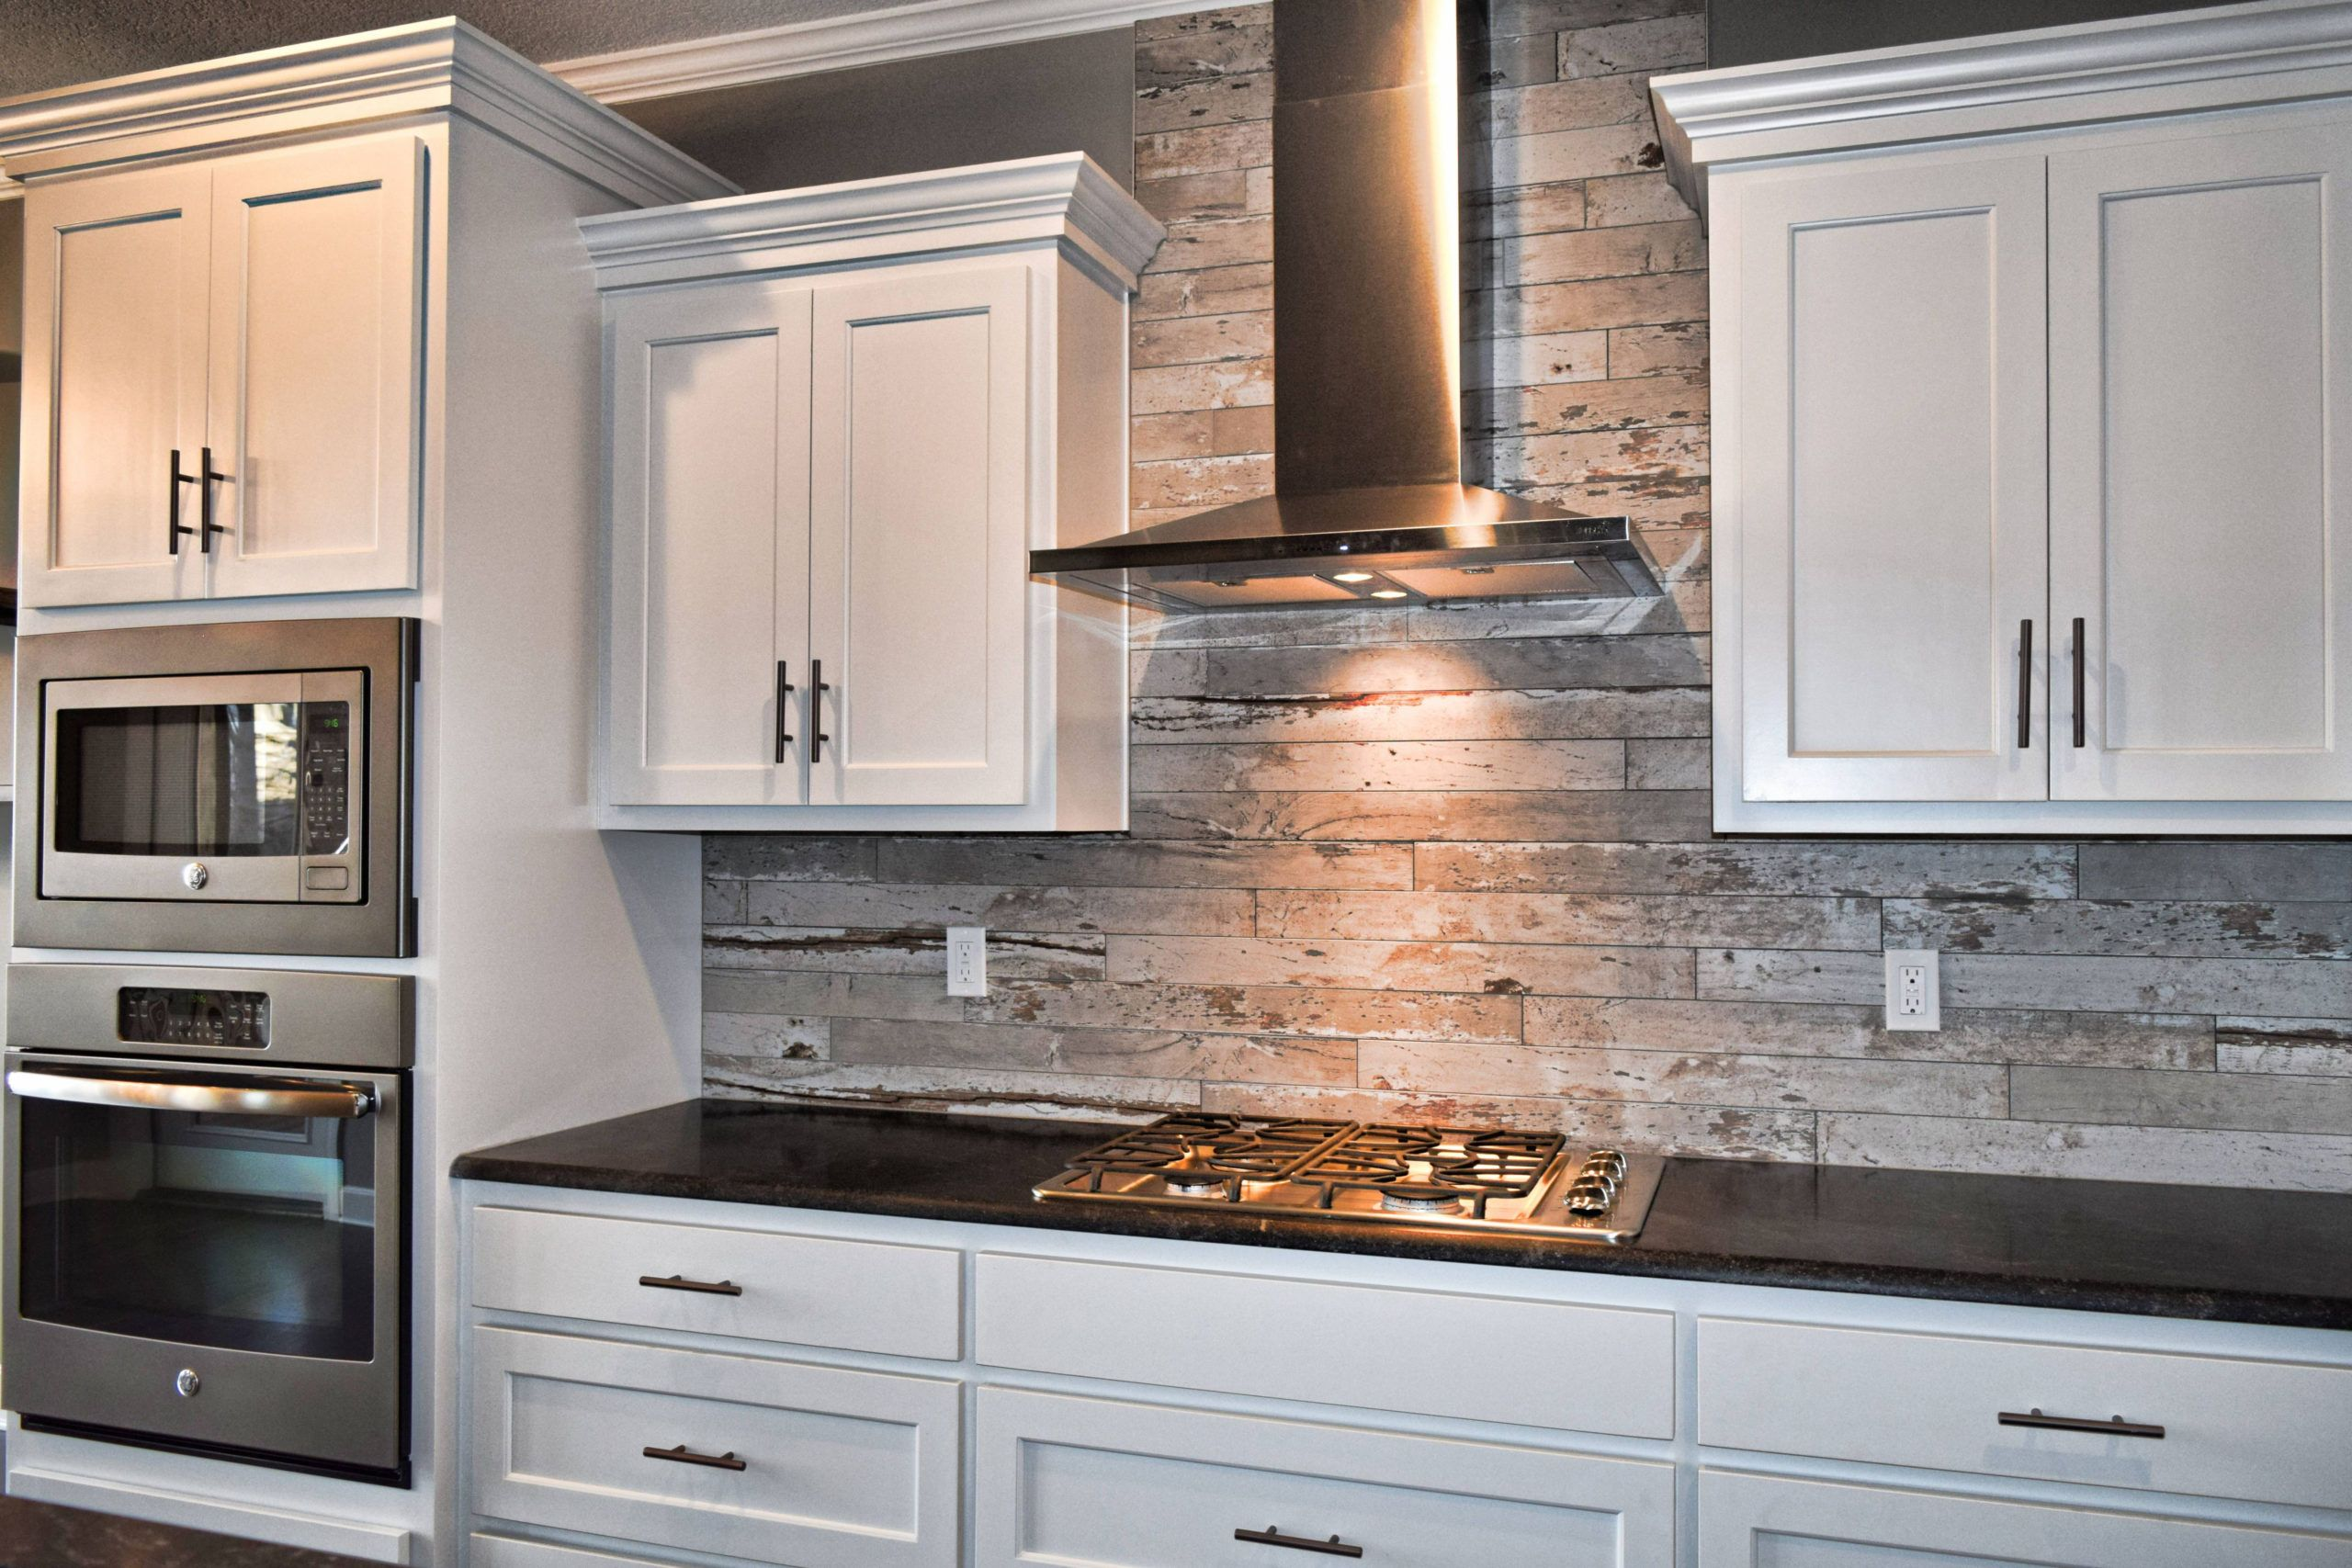 15 Amazing Wood Backsplash Ideas For Kitchen Gallery In 2020